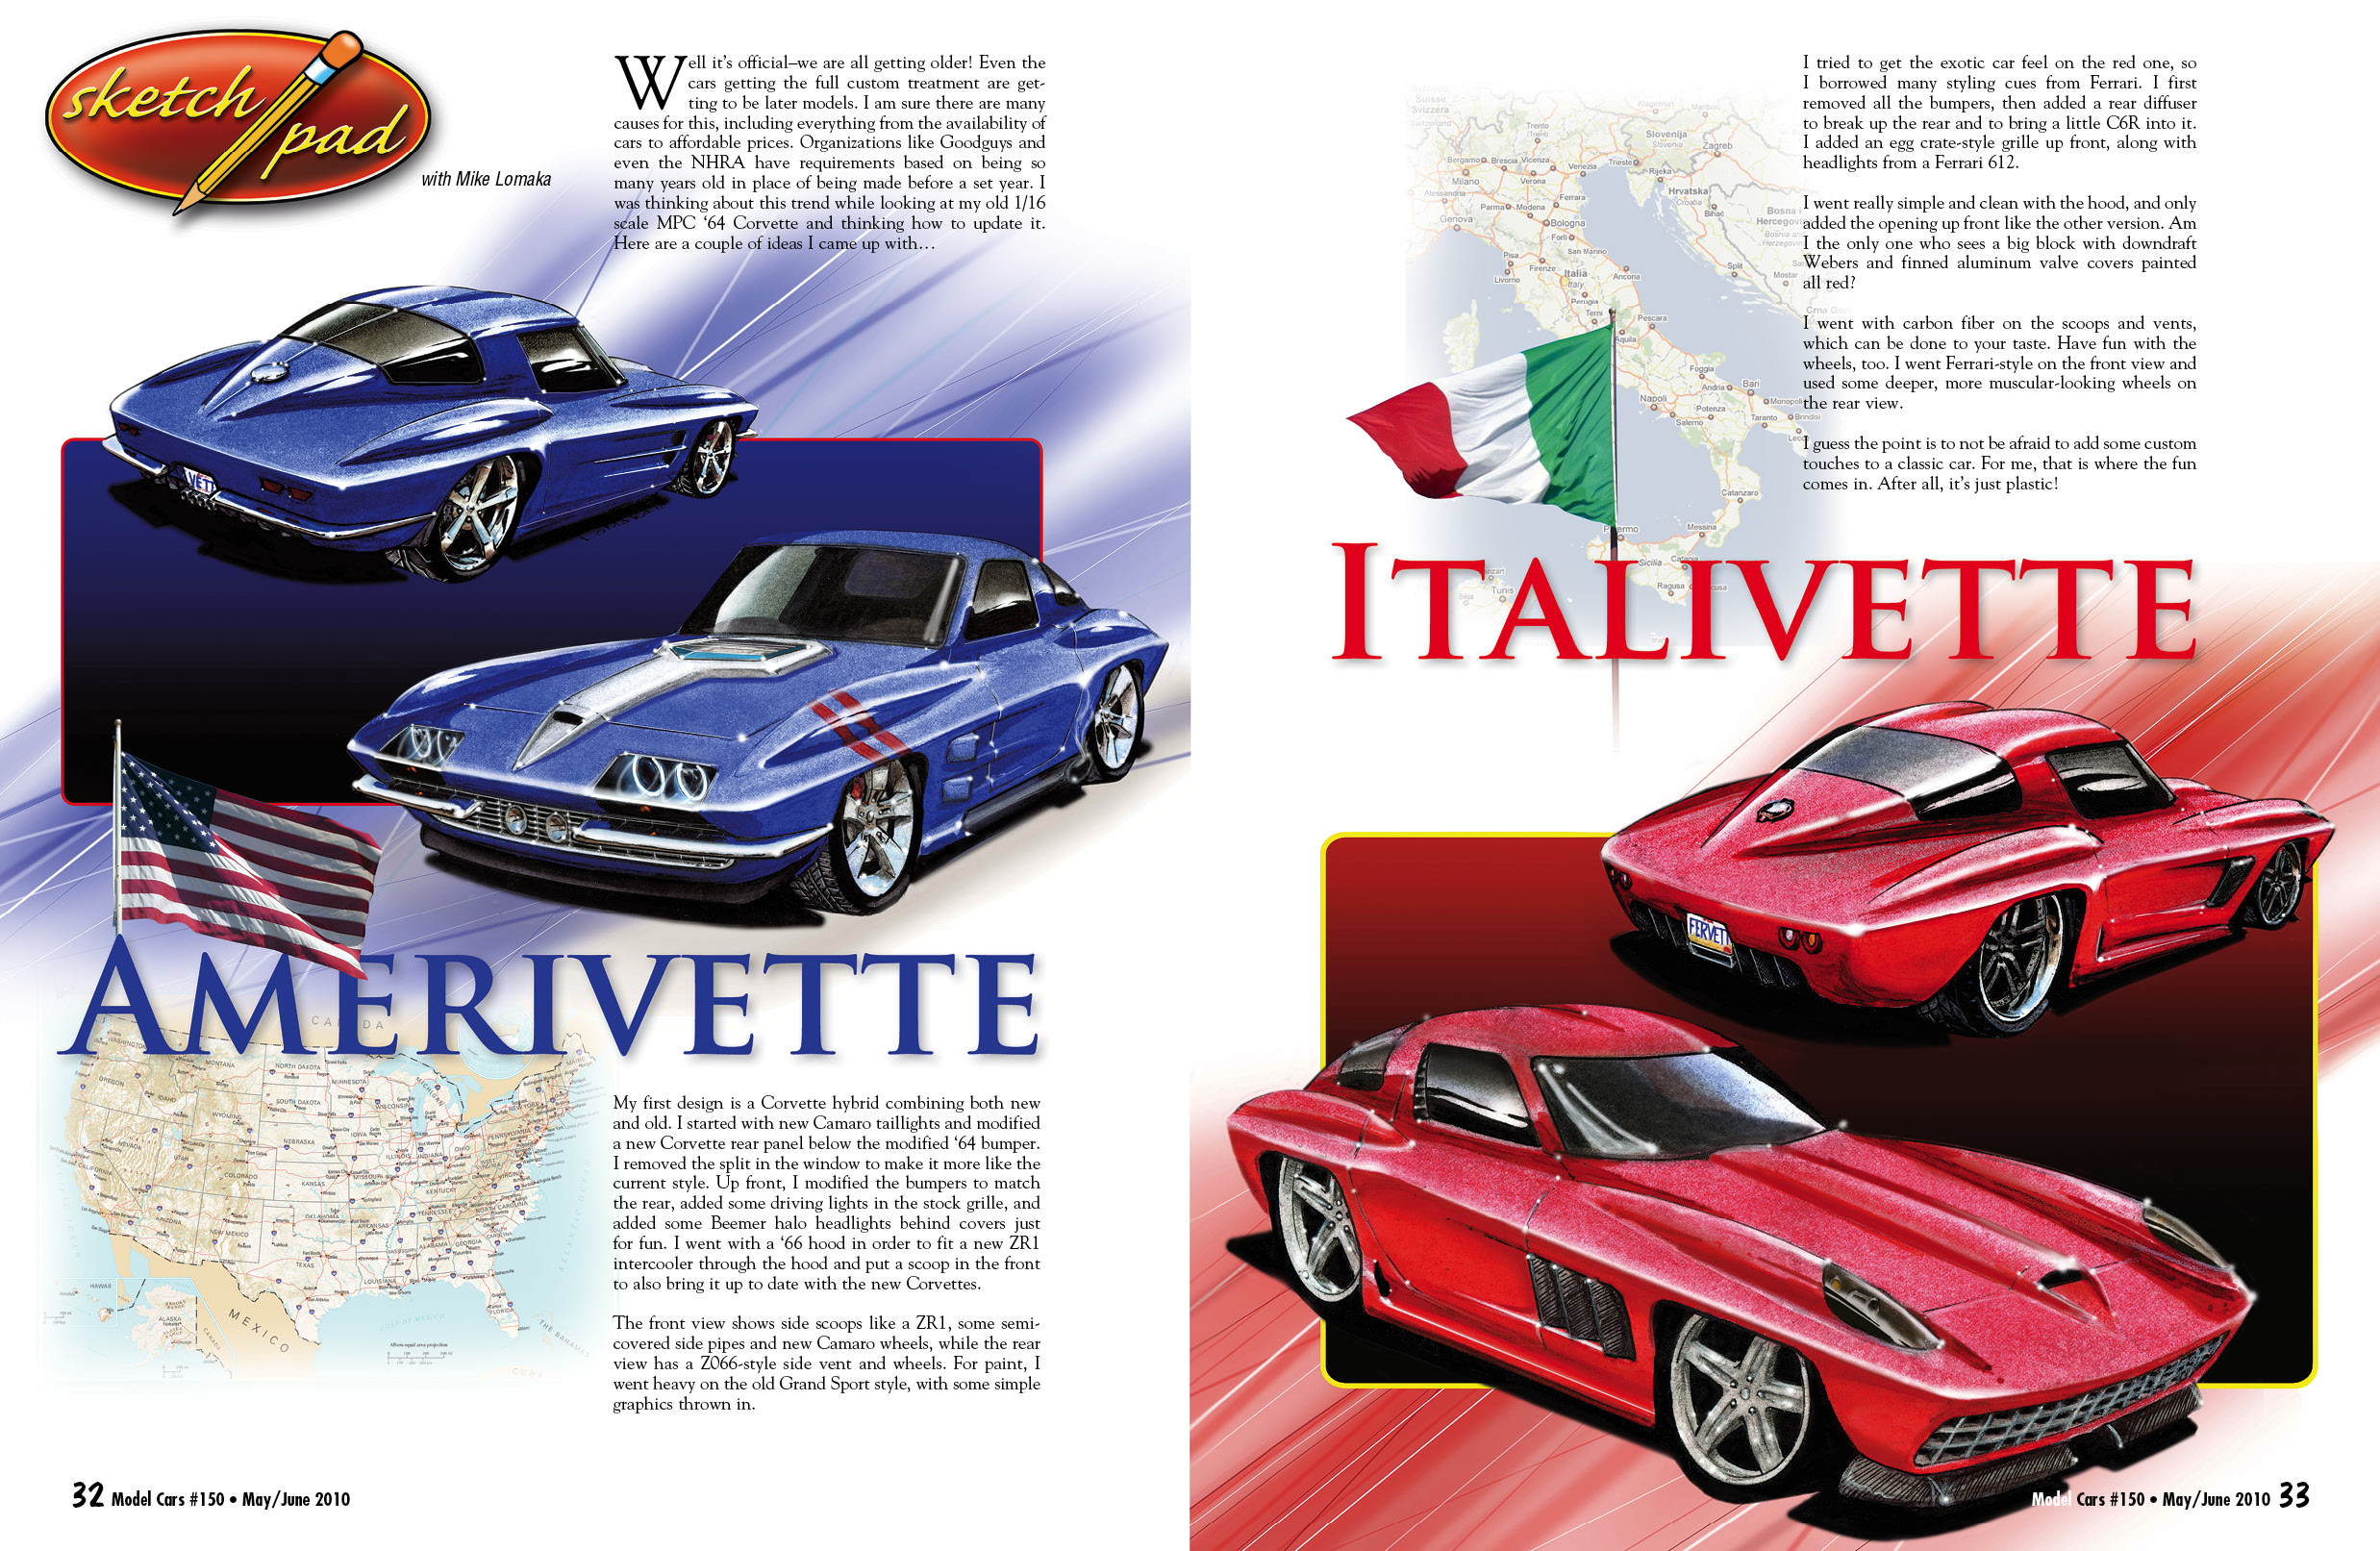 Sketchpad archives page 2 of 2 model cars magazine for Sketchpad com